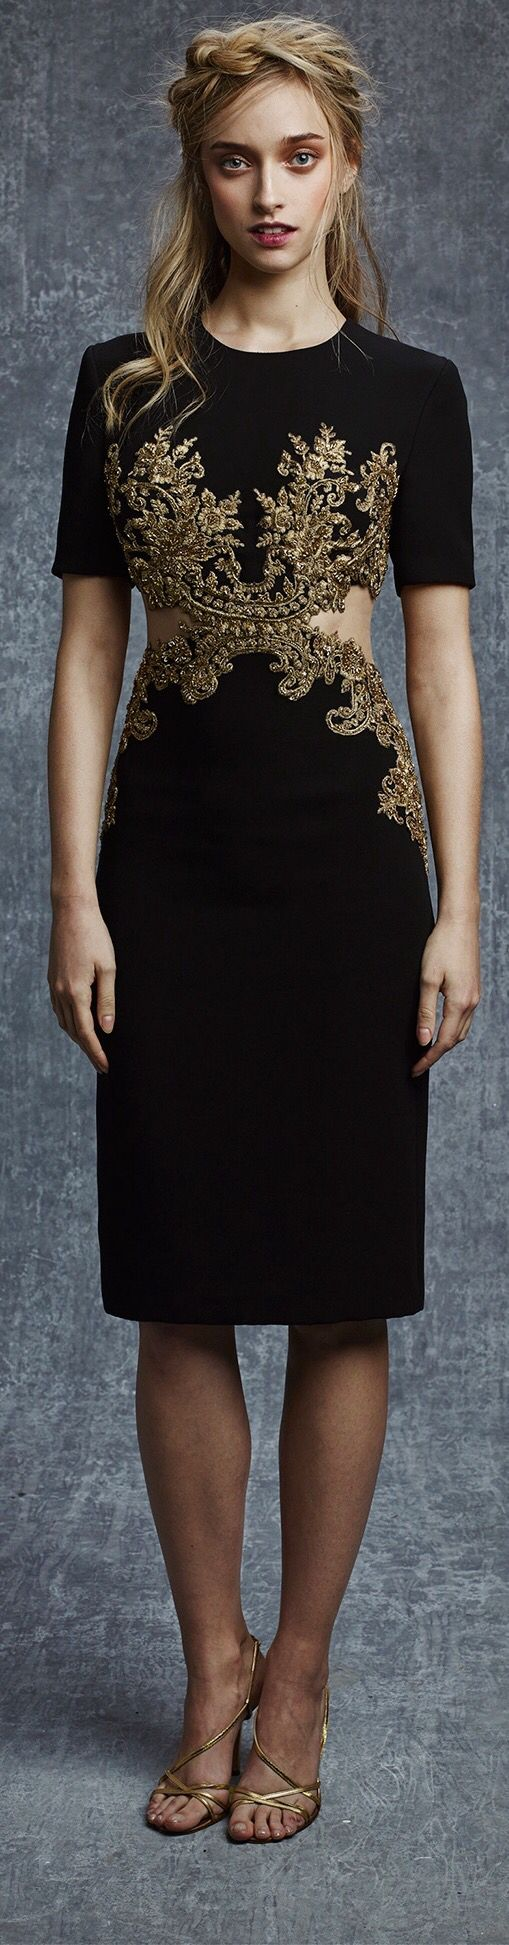 Reem Acra Pre-Fall 2015. Hauntingly beautiful.